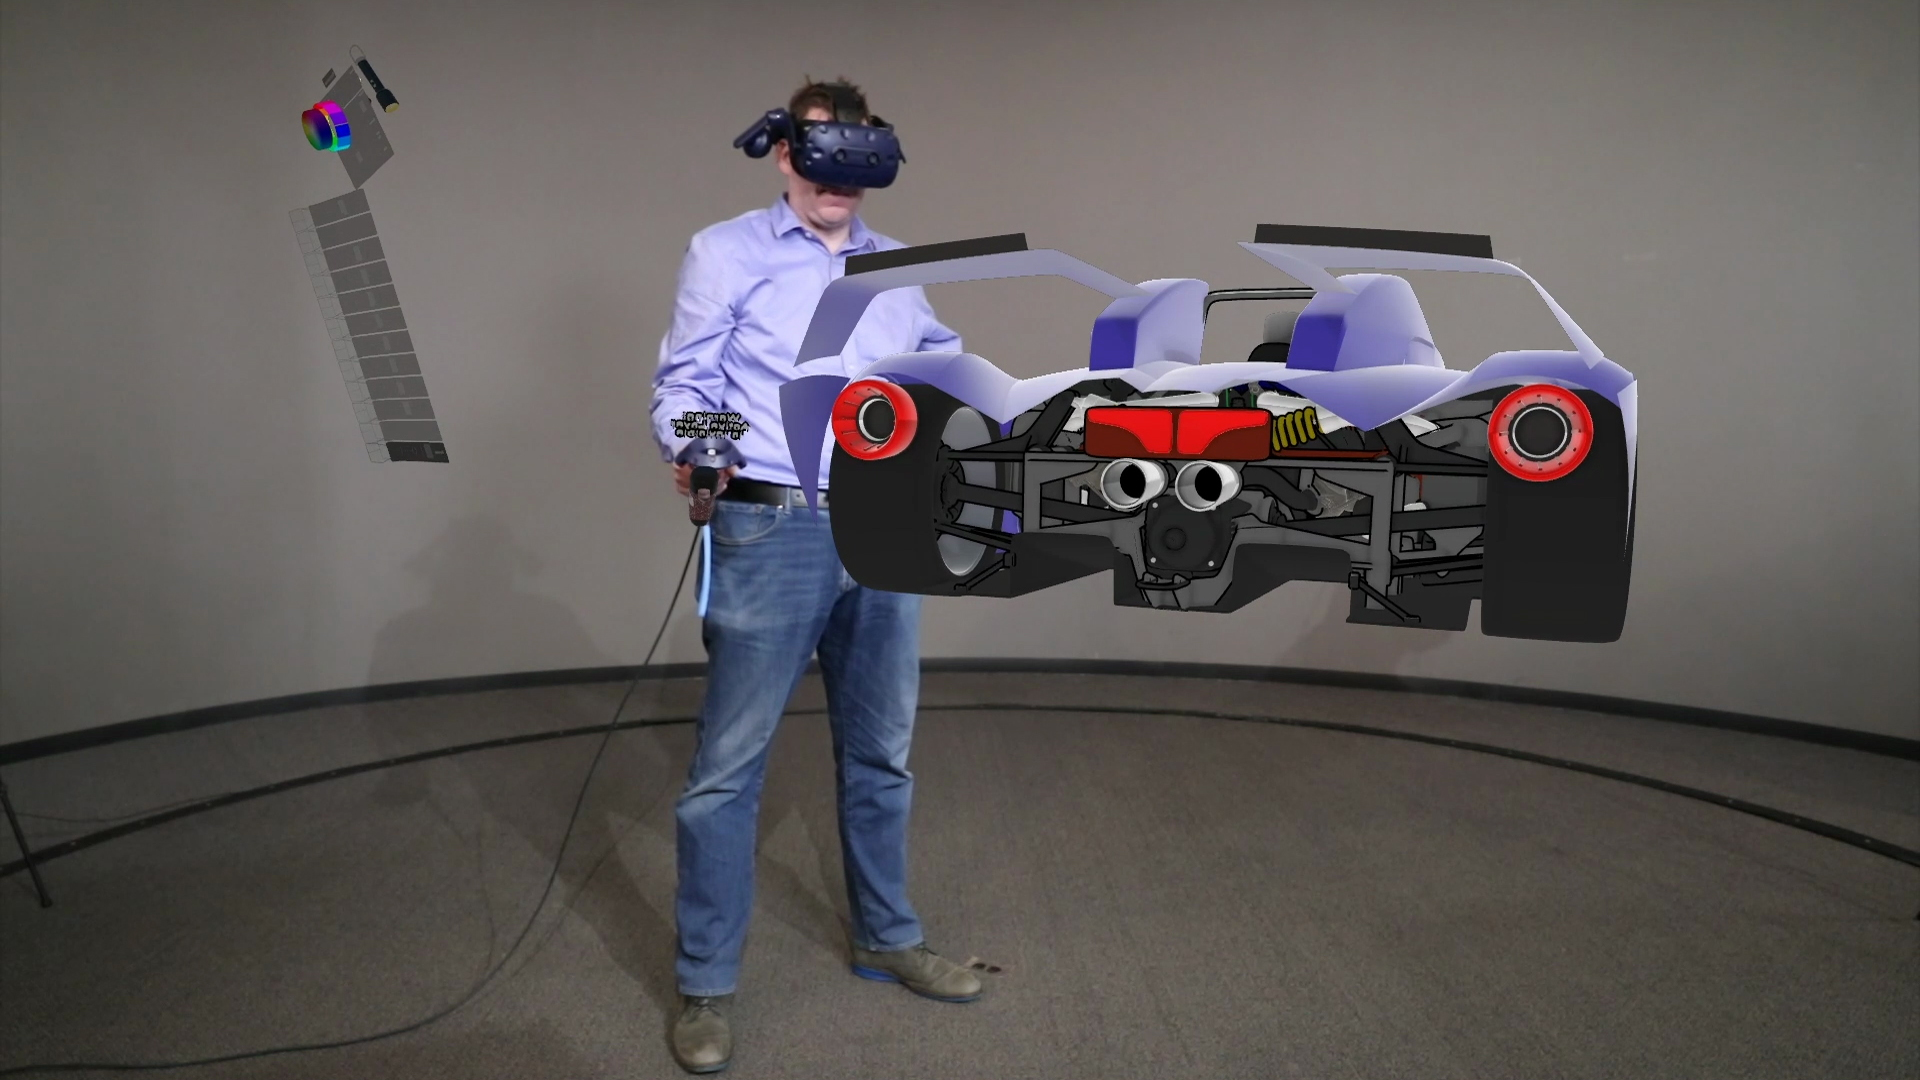 Ford Gravity Sketch 3D and VR design tool